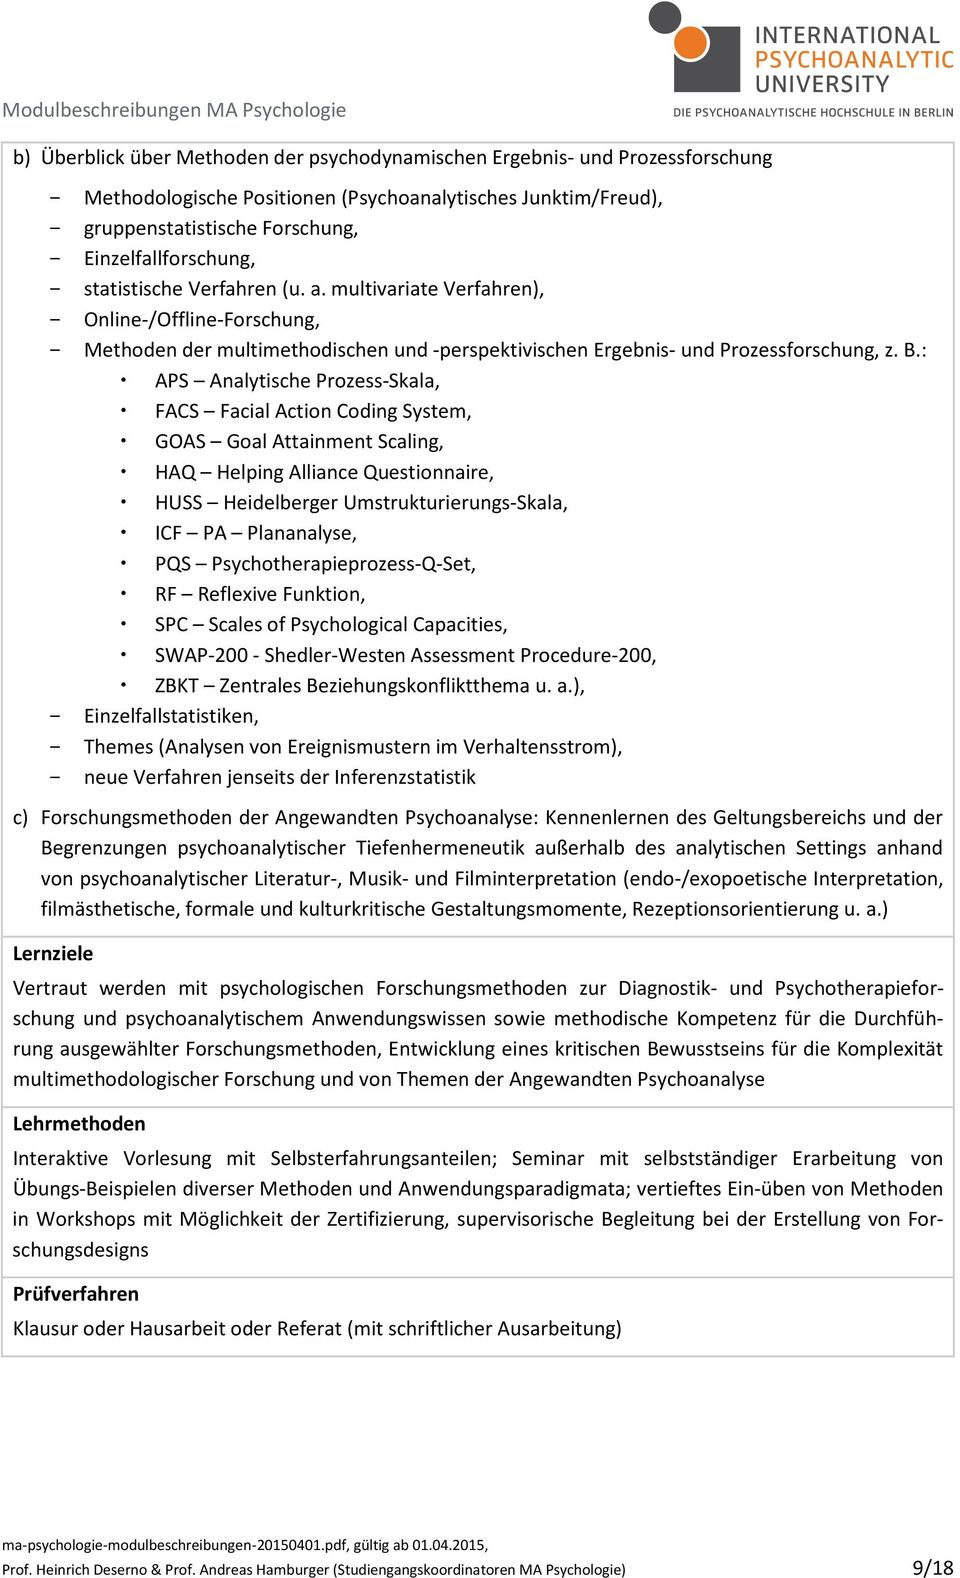 : APS Analytische Prozess-Skala, FACS Facial Action Coding System, GOAS Goal Attainment Scaling, HAQ Helping Alliance Questionnaire, HUSS Heidelberger Umstrukturierungs-Skala, ICF PA Plananalyse, PQS